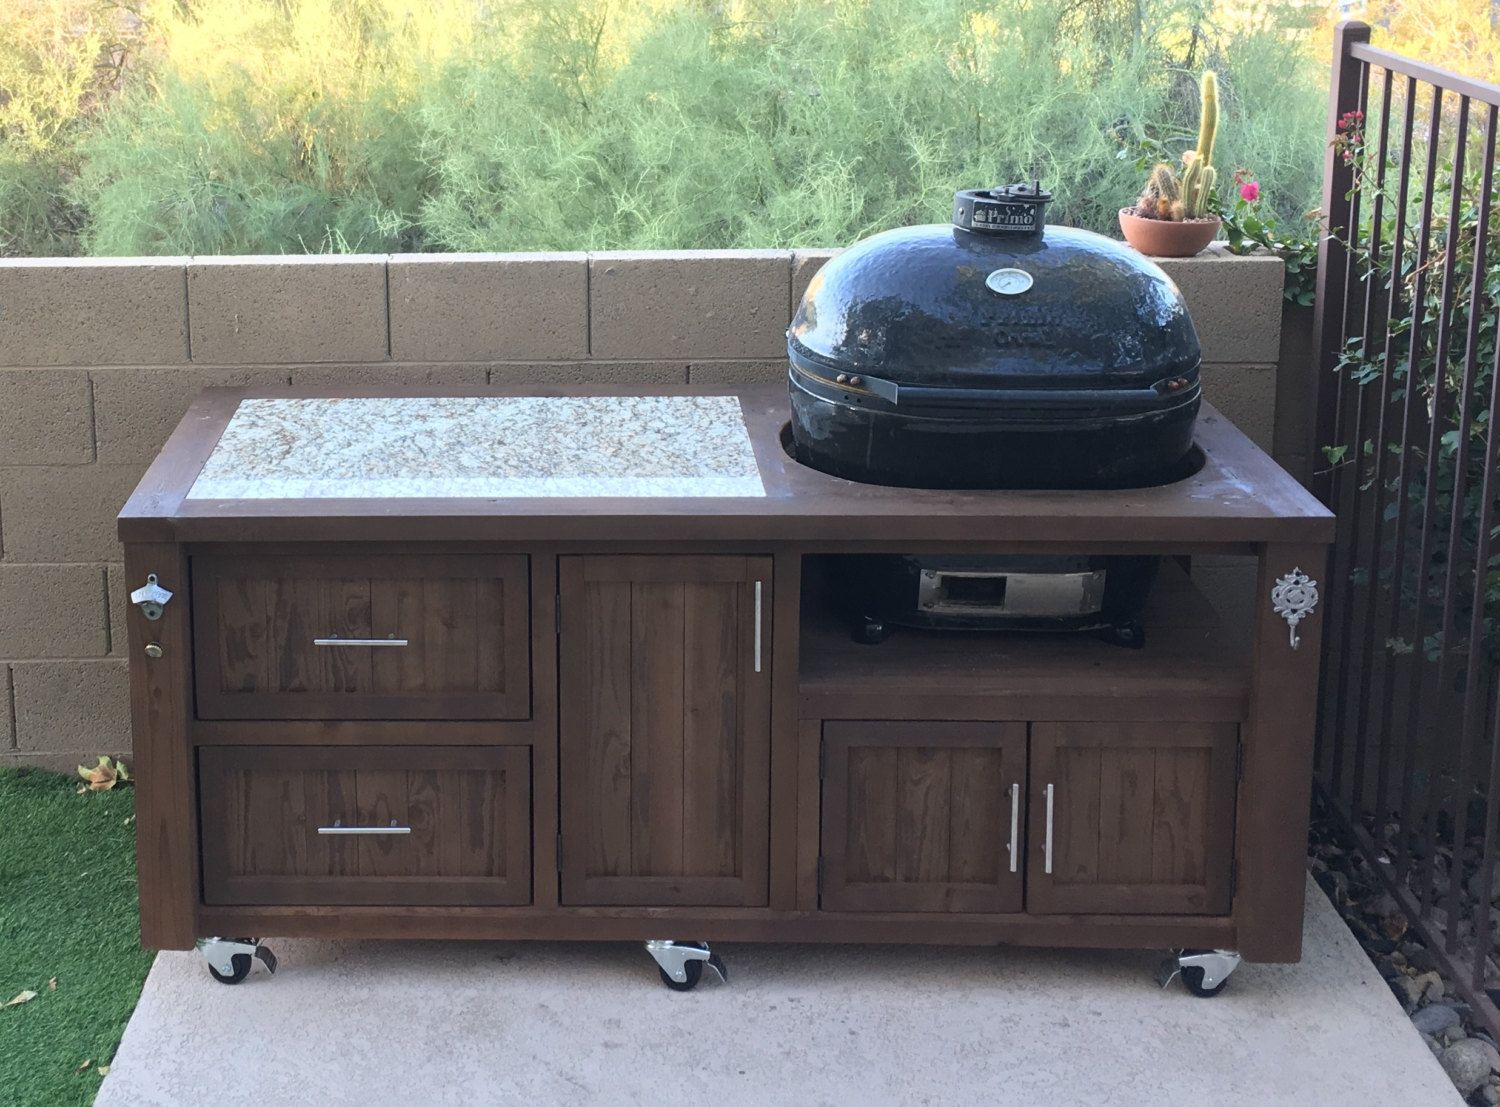 Primo Grill Cabinet Outdoor Kitchen Rolling Grill Cart Grill Table Grill Island Grill Grill Table Big Green Egg Outdoor Kitchen Outdoor Kitchen Grill